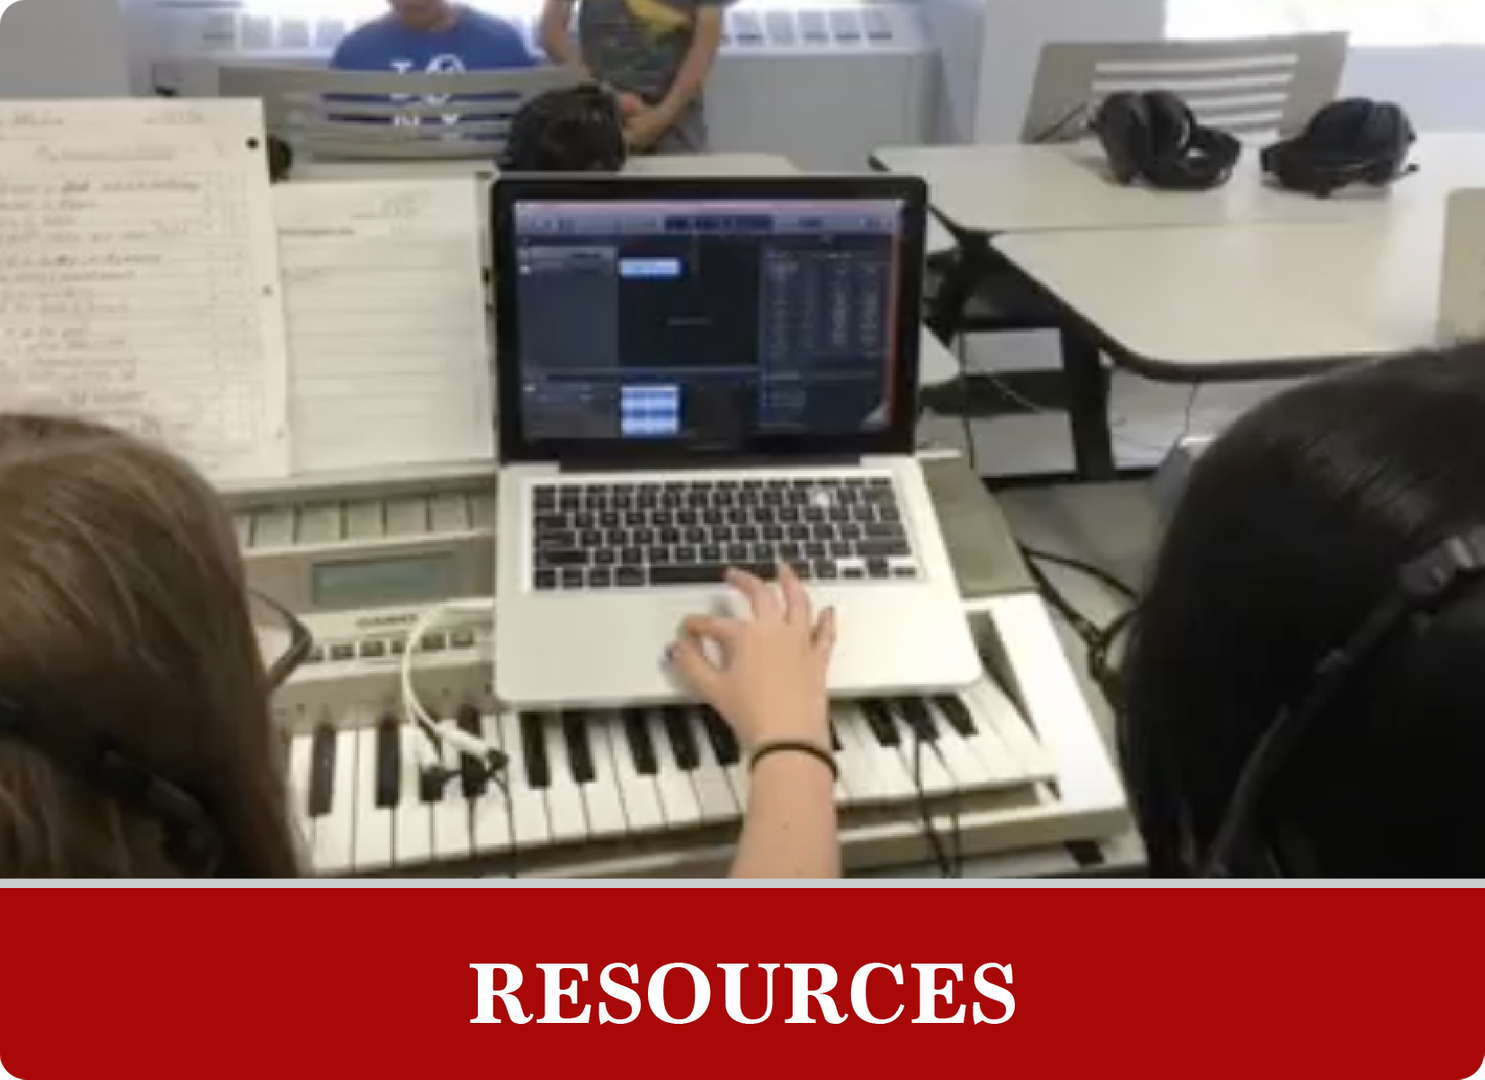 Resources: Students working on a computer